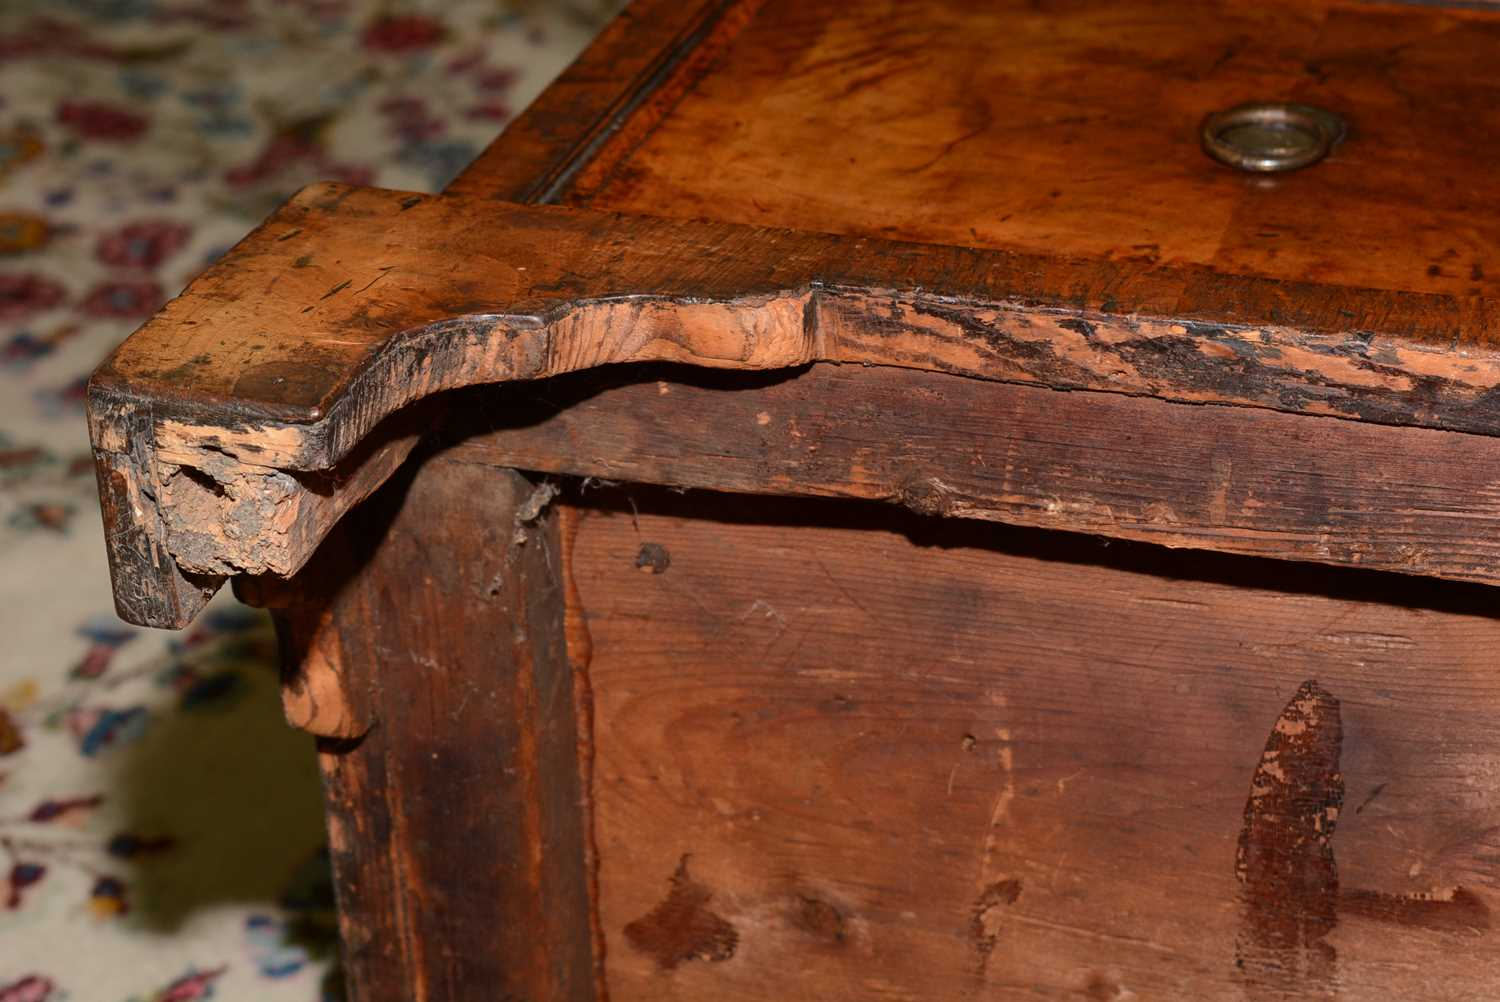 Early 18th Century walnut bachelors chest - Image 30 of 39